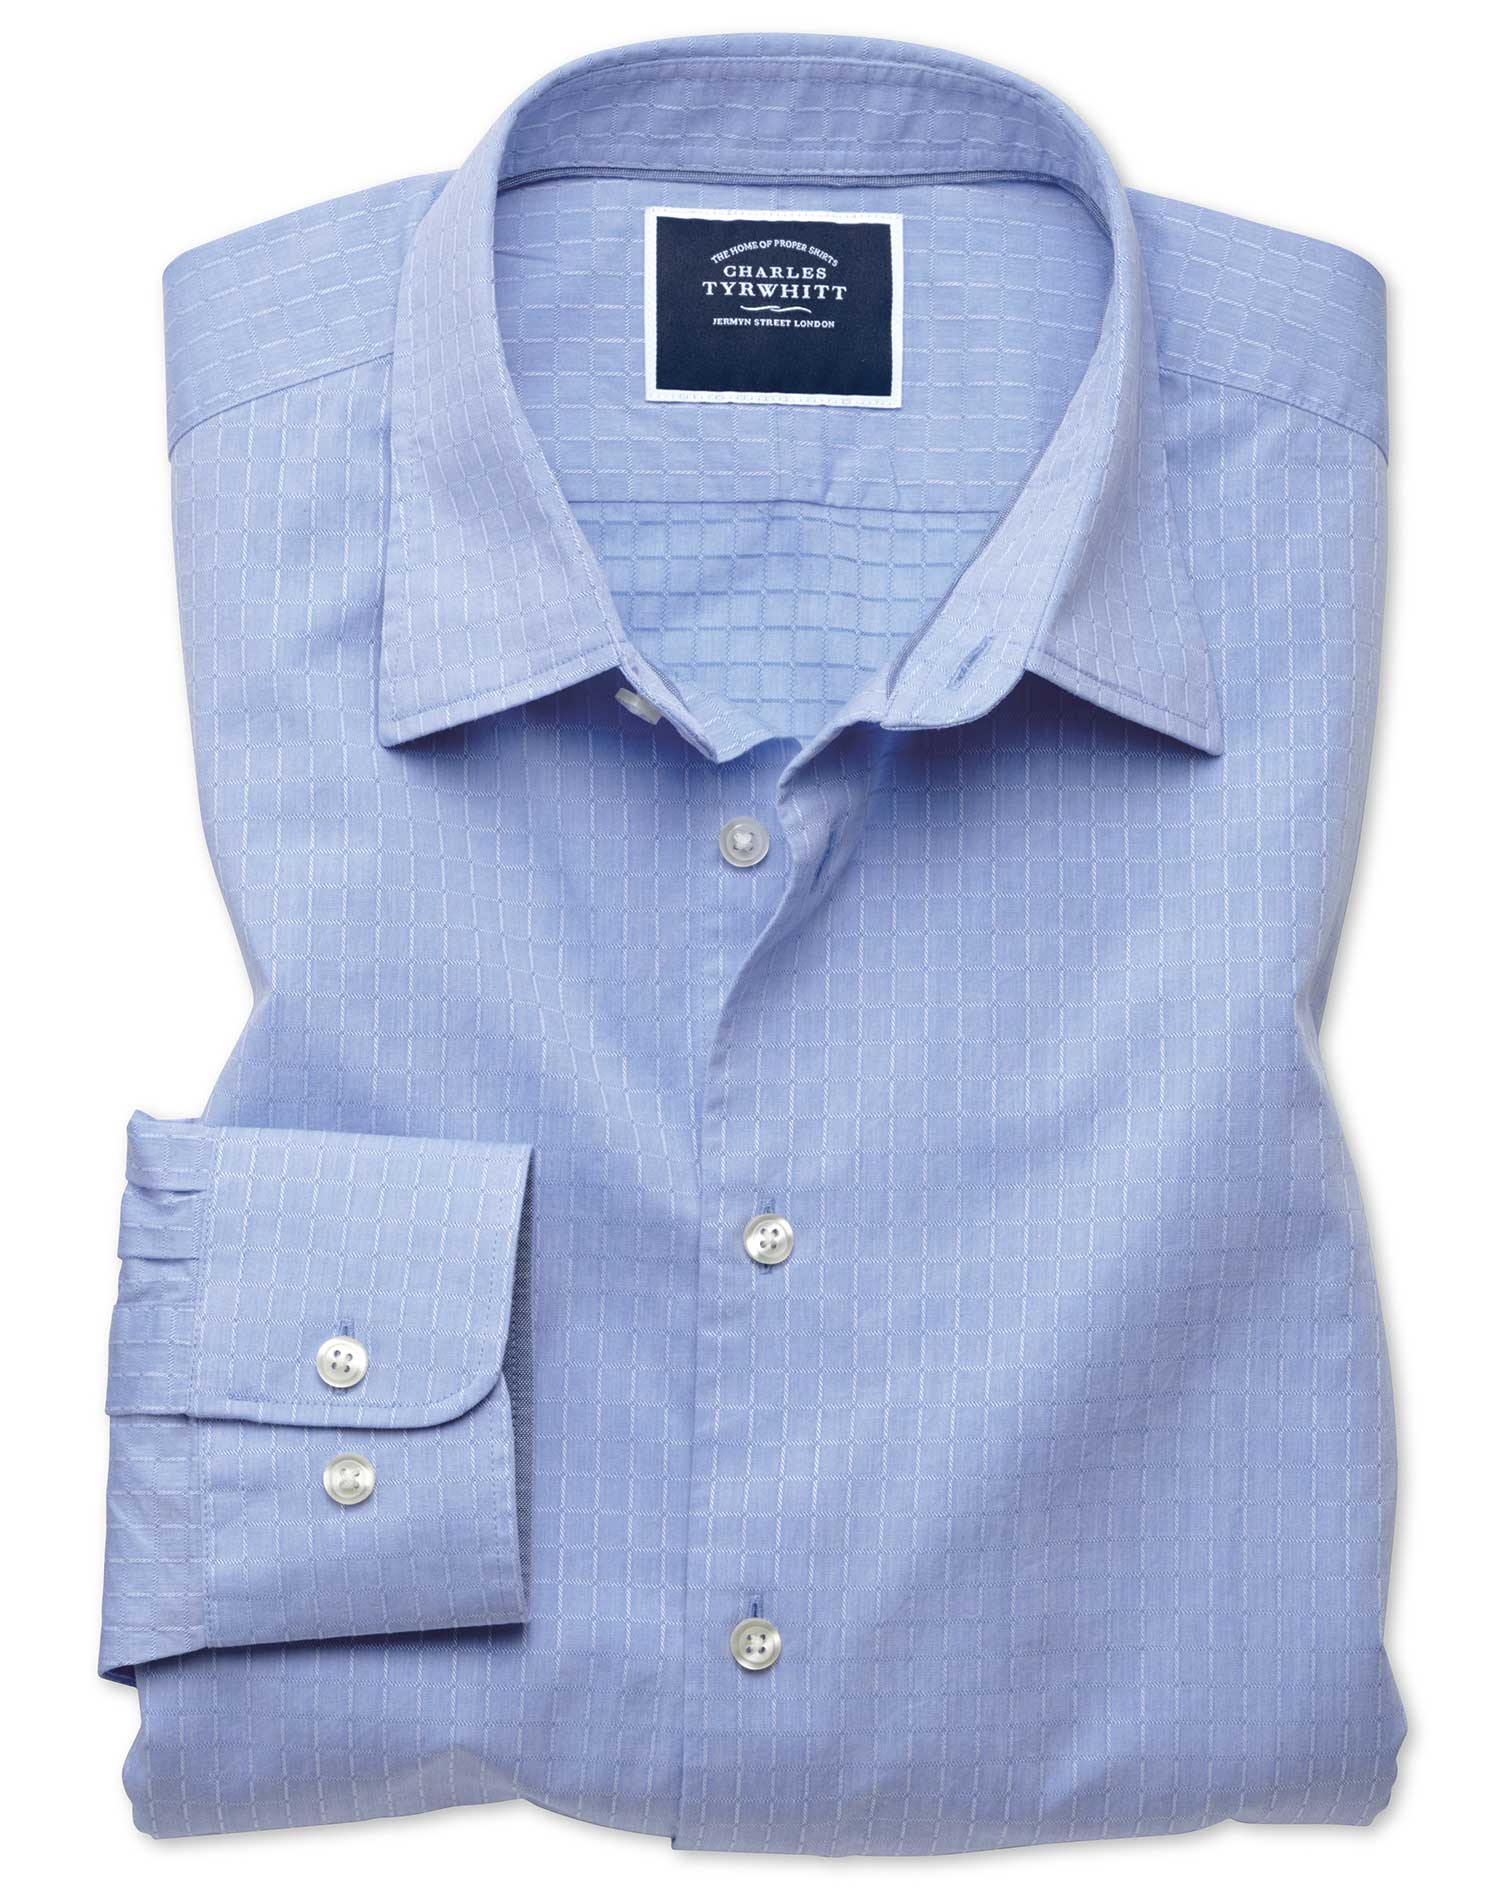 Classic Fit Blue Square Soft Texture Cotton Shirt Single Cuff Size XXXL by Charles Tyrwhitt